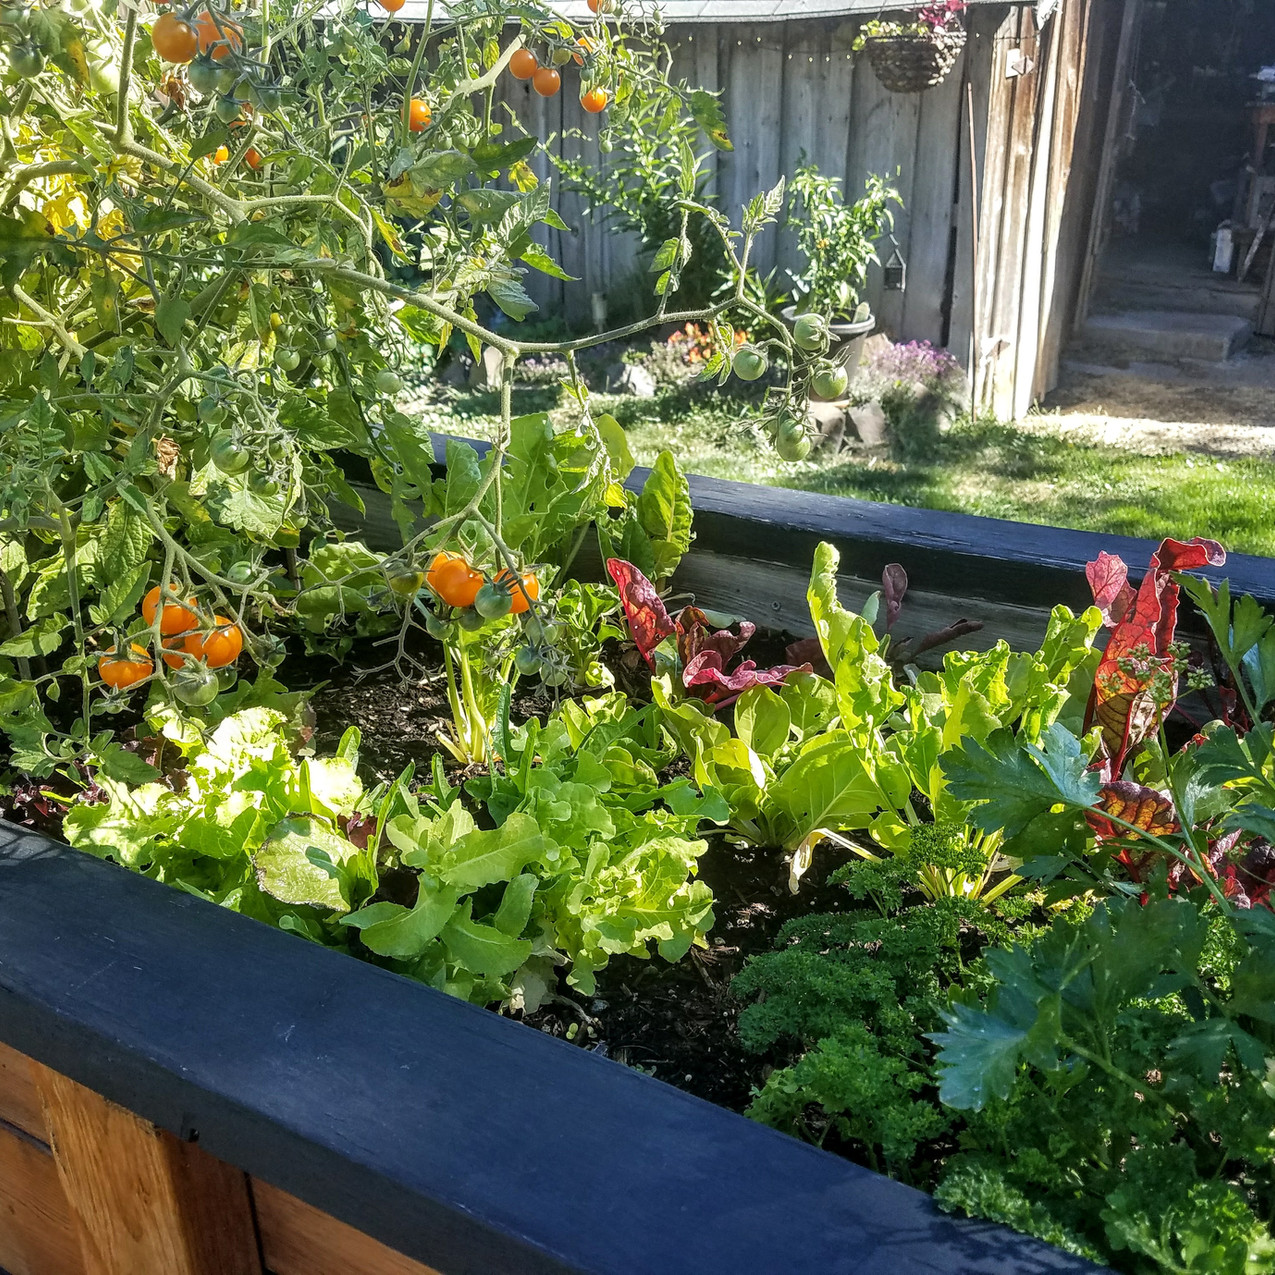 The Raised Bed